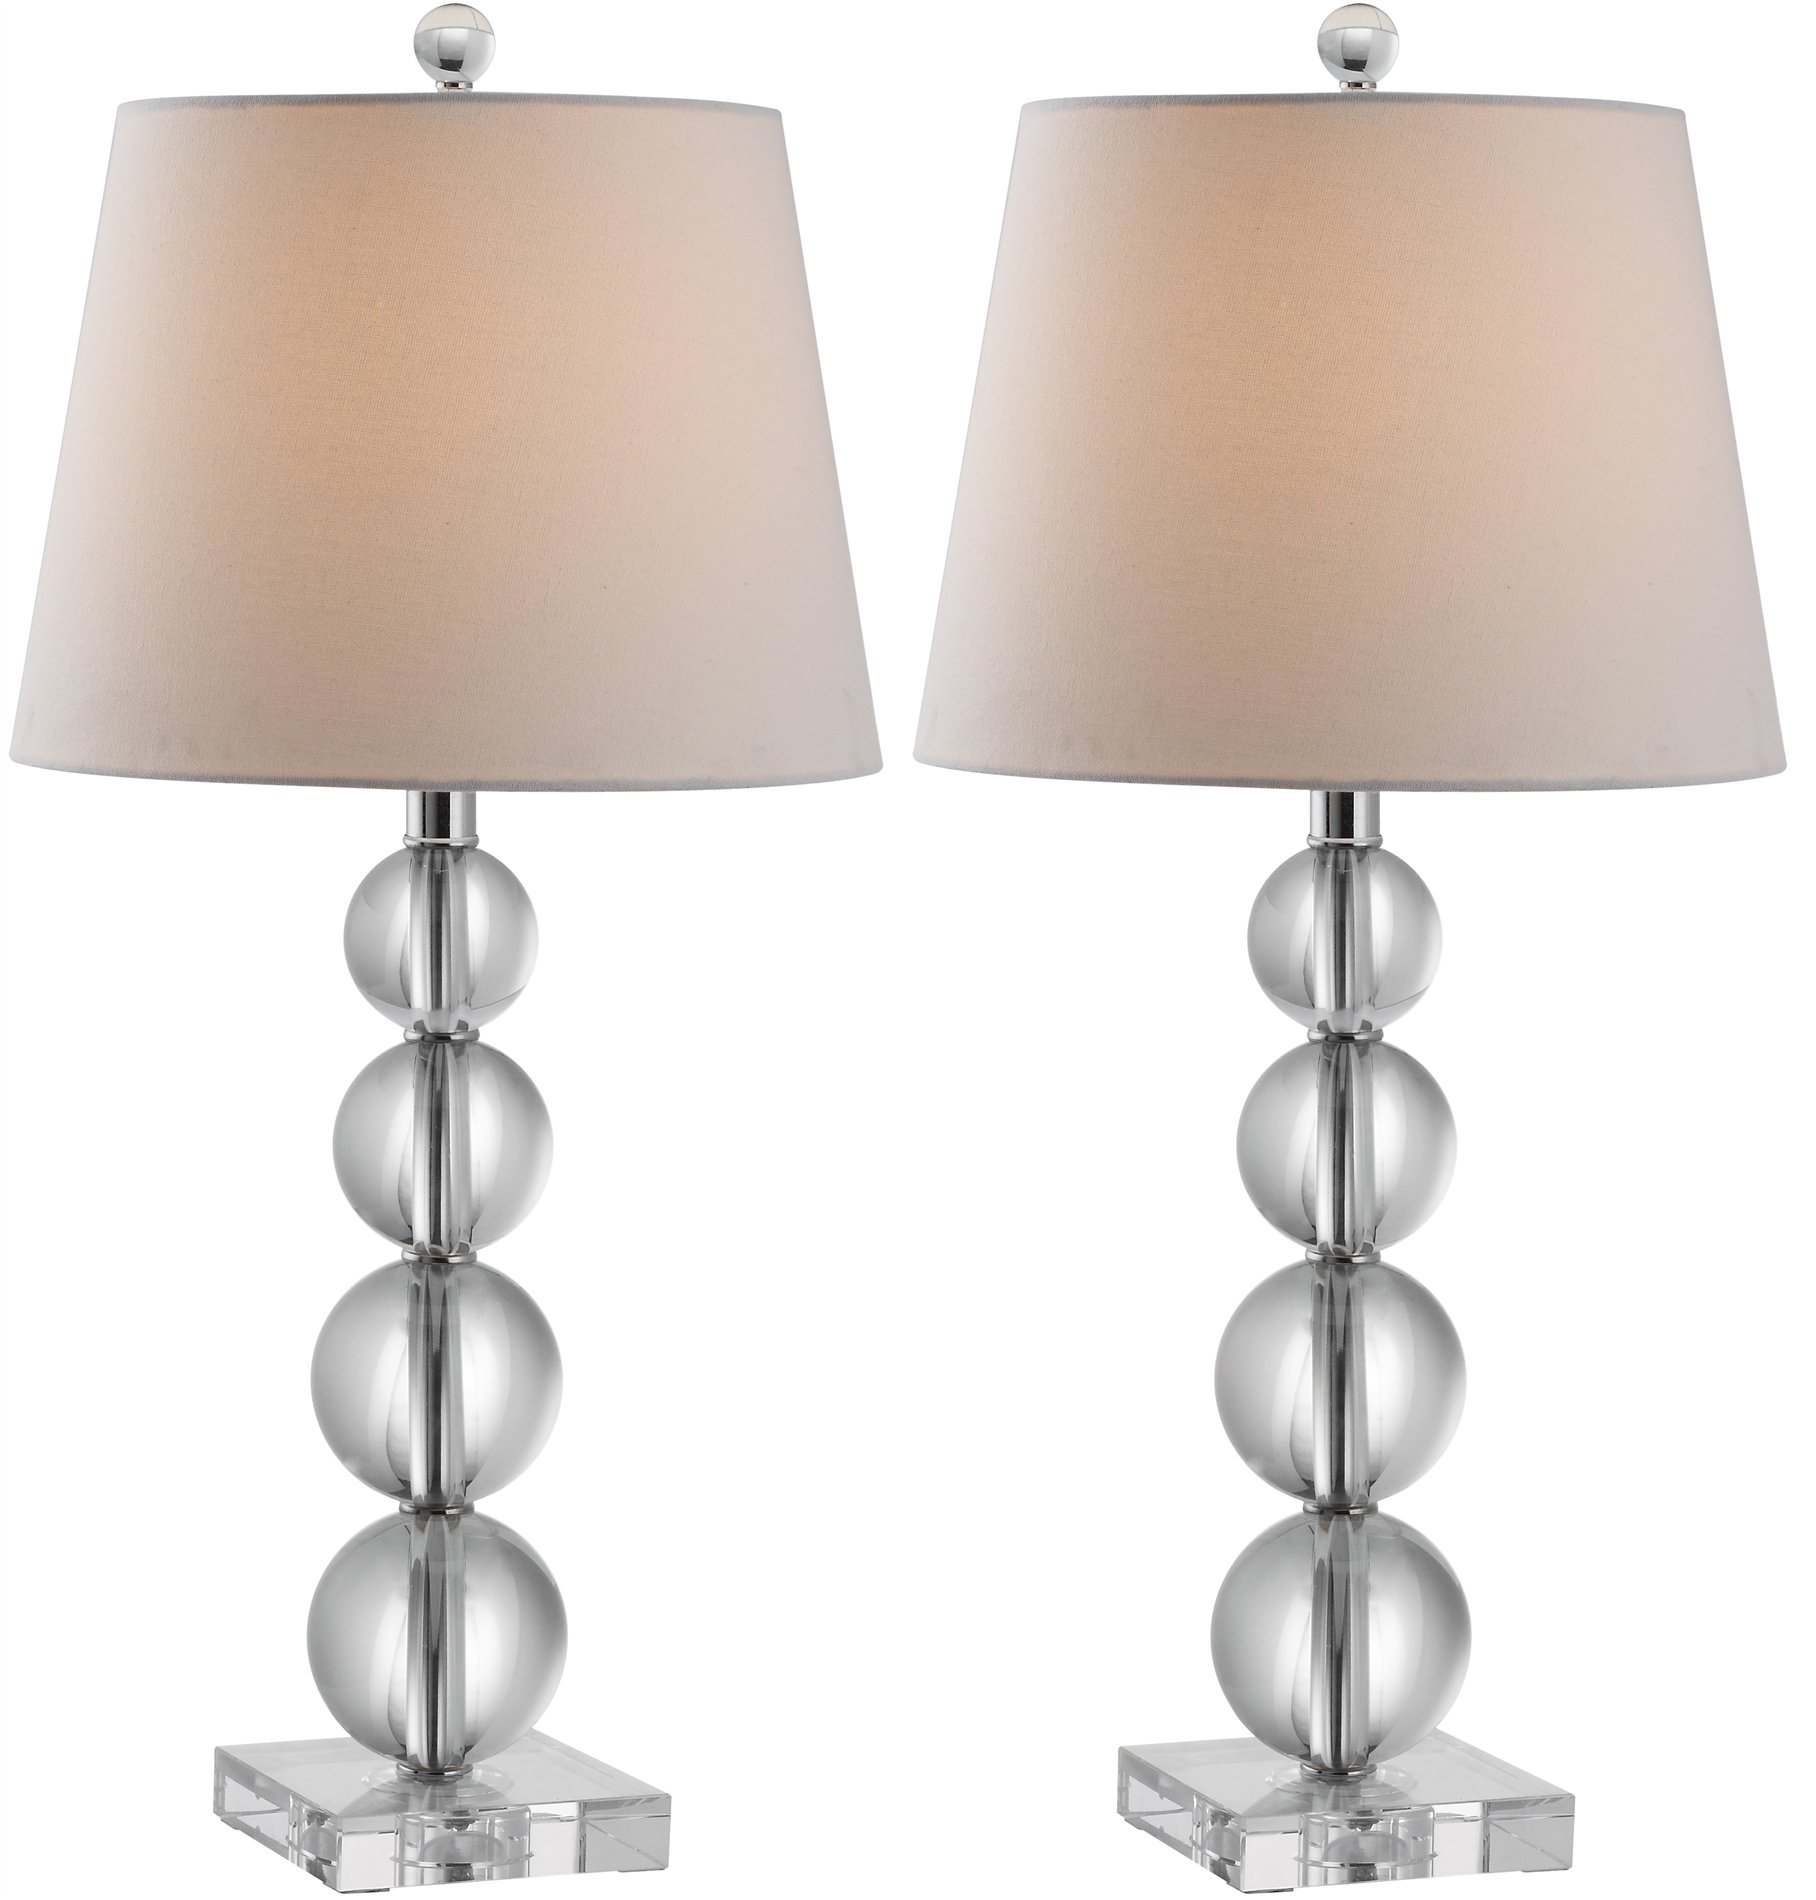 safavieh millie clear crystal ball table lamp sfv lit4102a set2 see. Black Bedroom Furniture Sets. Home Design Ideas